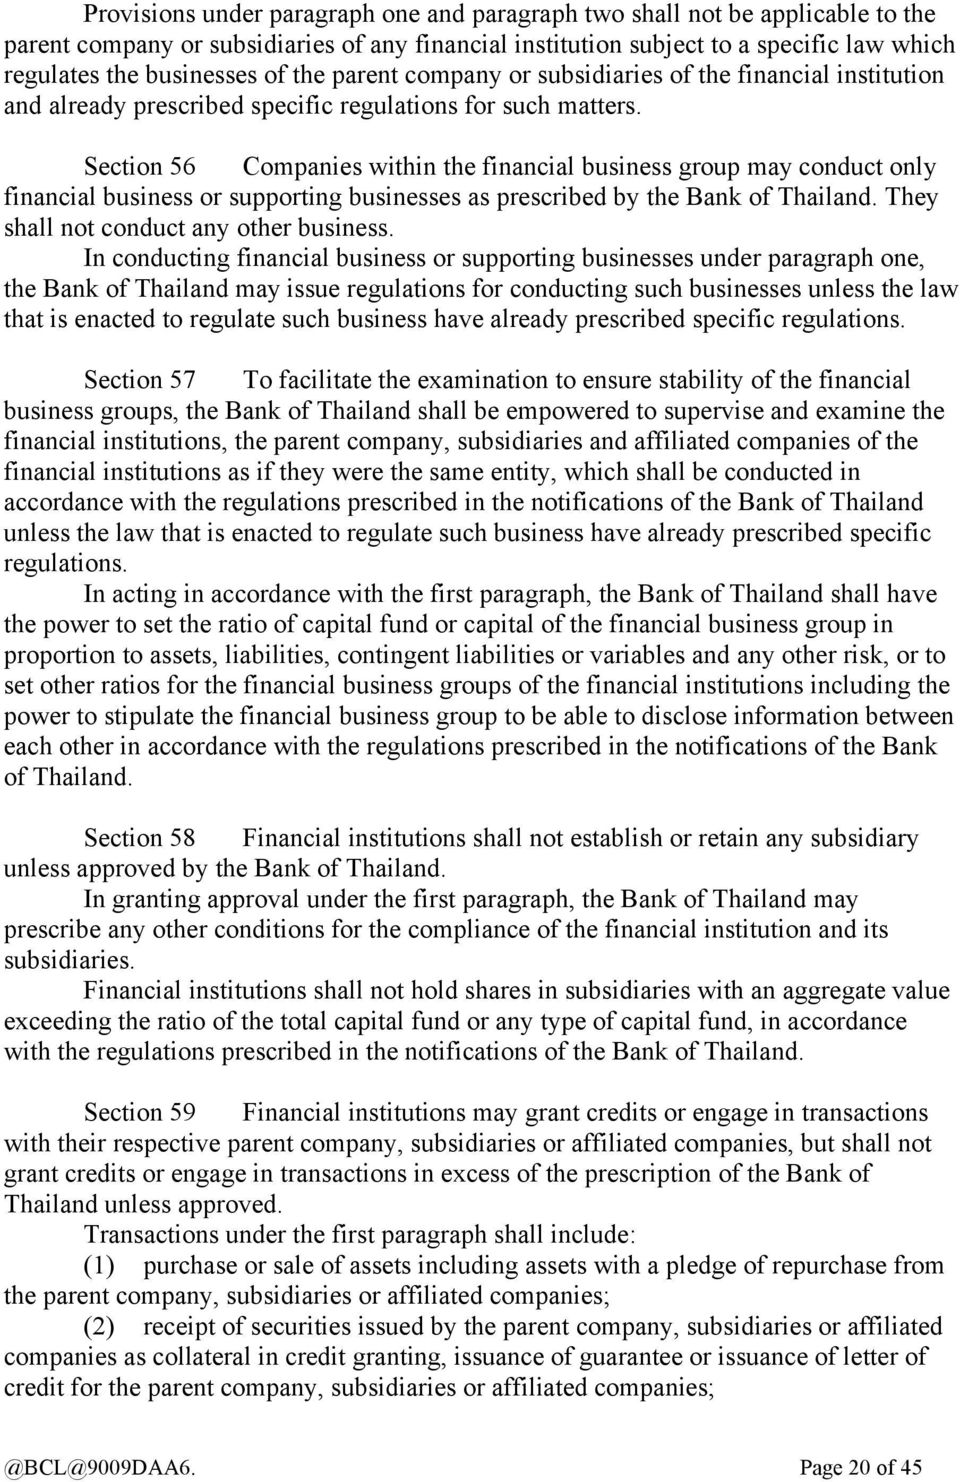 Section 56 Companies within the financial business group may conduct only financial business or supporting businesses as prescribed by the Bank of Thailand. They shall not conduct any other business.